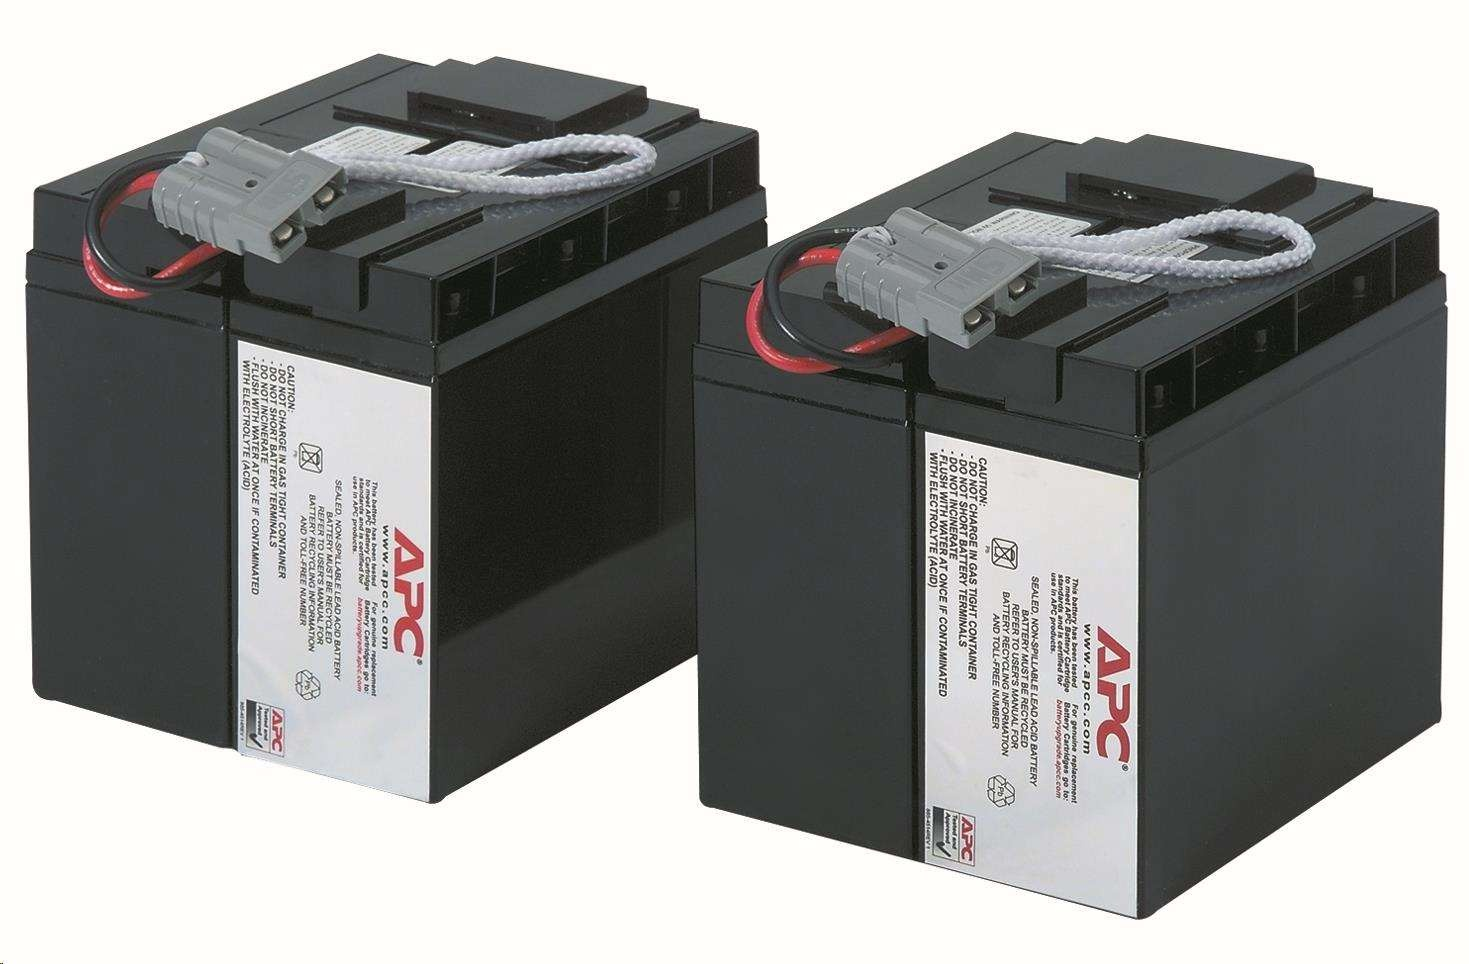 APC Replacement Battery Cartridge #55, SUA2200I, SUA3000I, SMT2200I, SMT3000I, SUA2200XLI, SUA3000XLI, SUA48XLBP